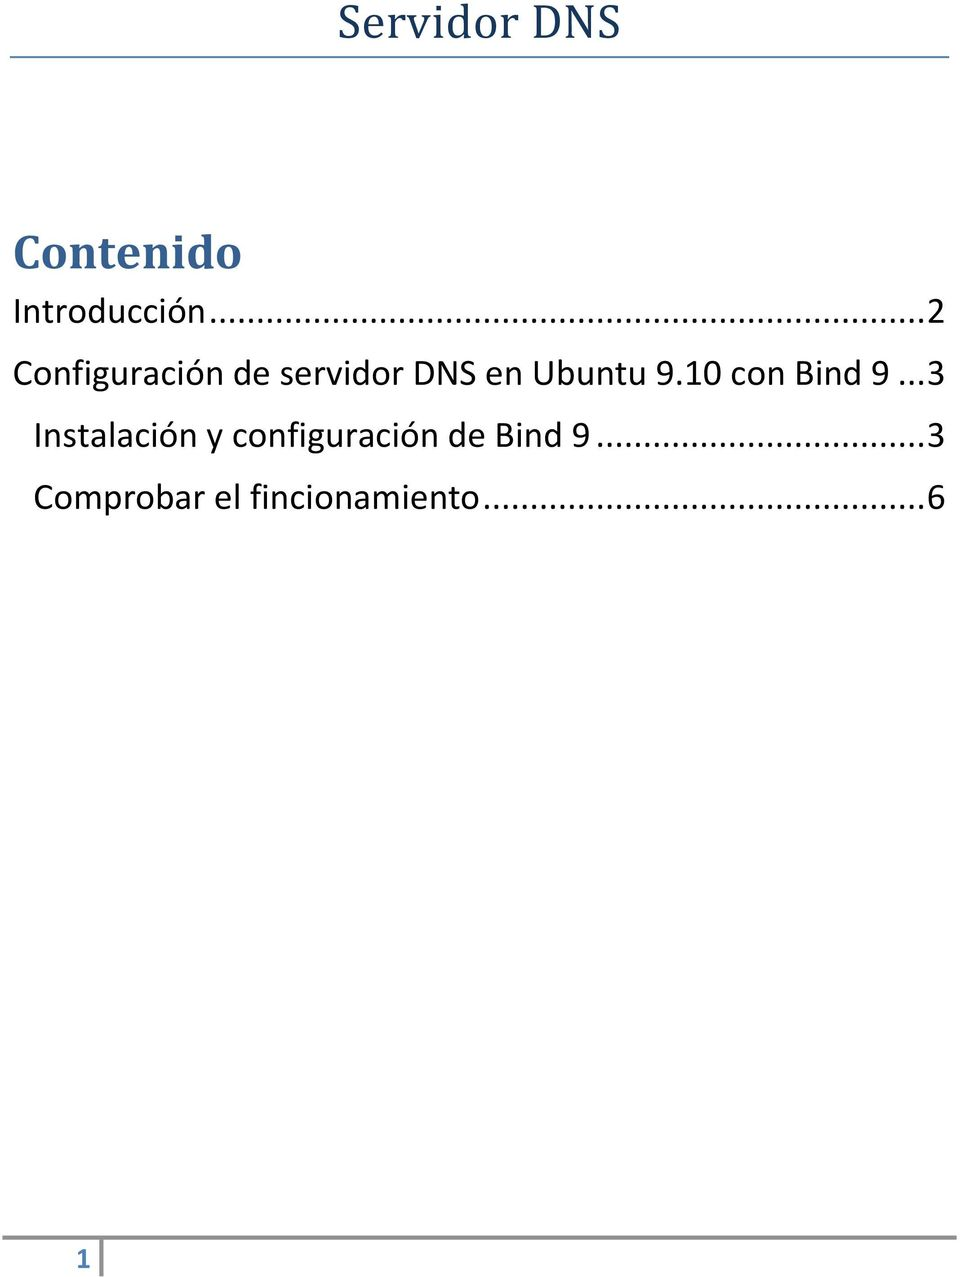 10 con Bind 9.